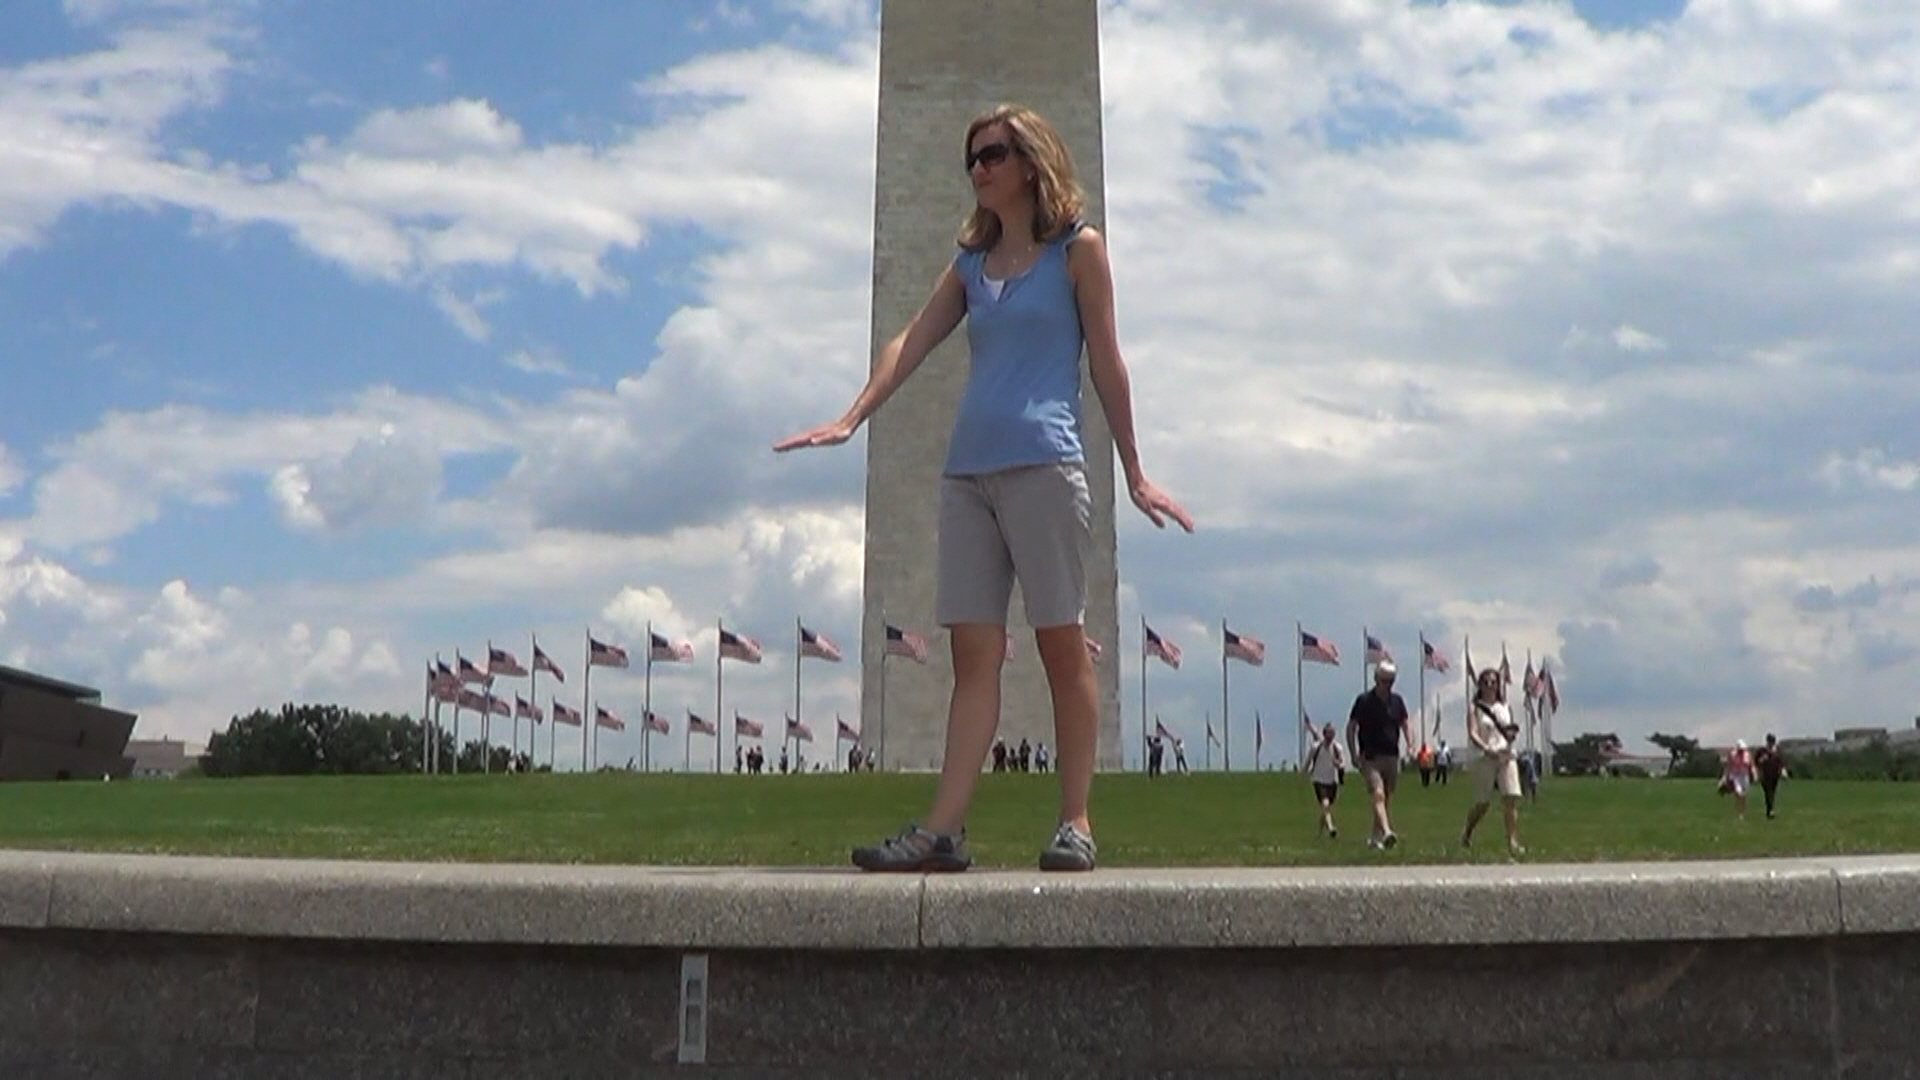 11 - Washington Monument